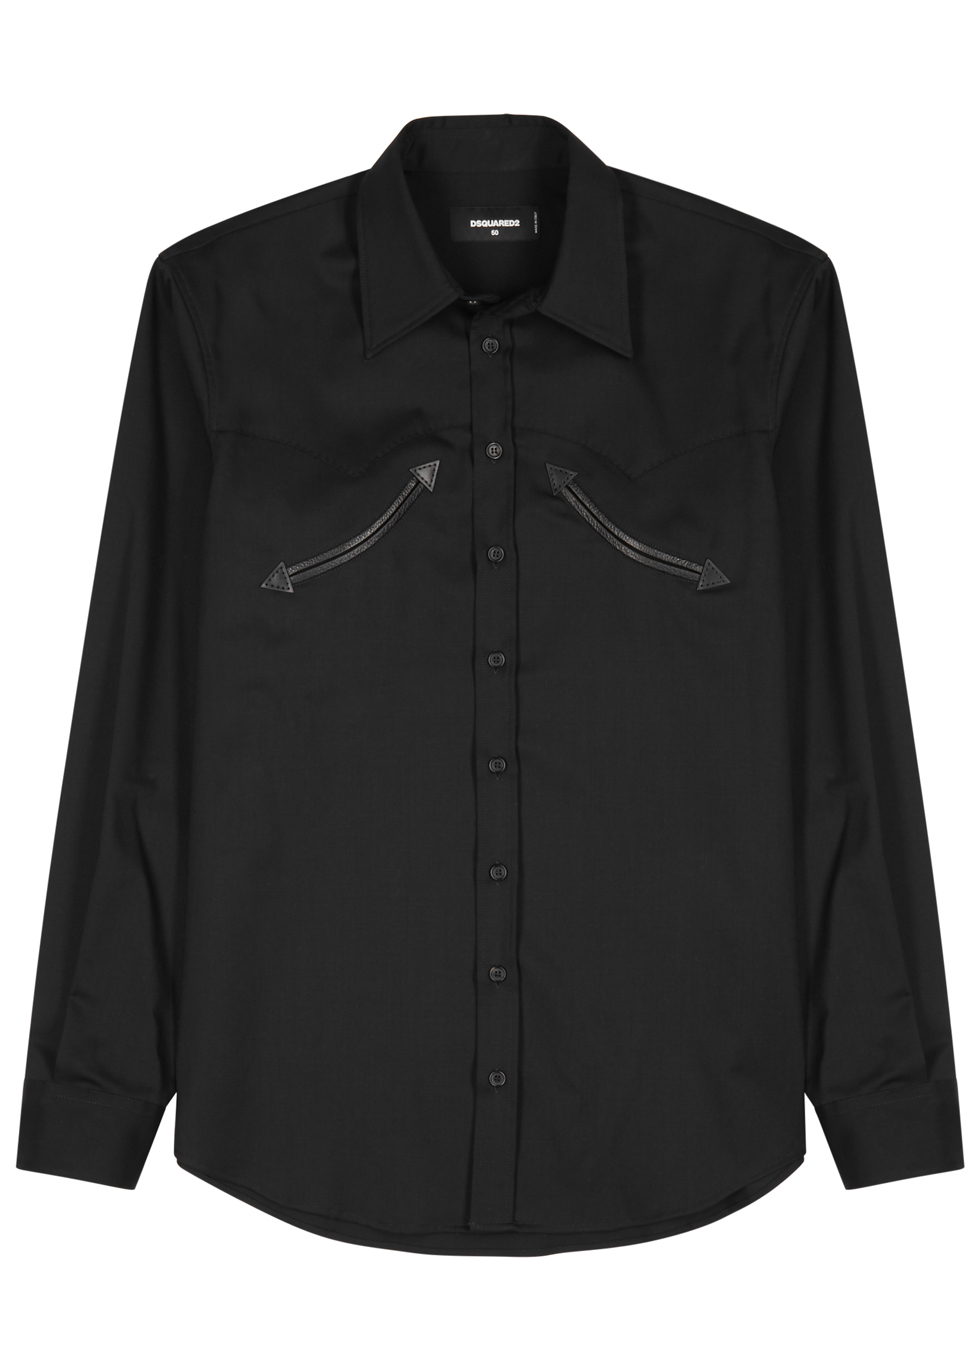 DSQUARED2 DISCO WESTERN BLACK TWILL SHIRT